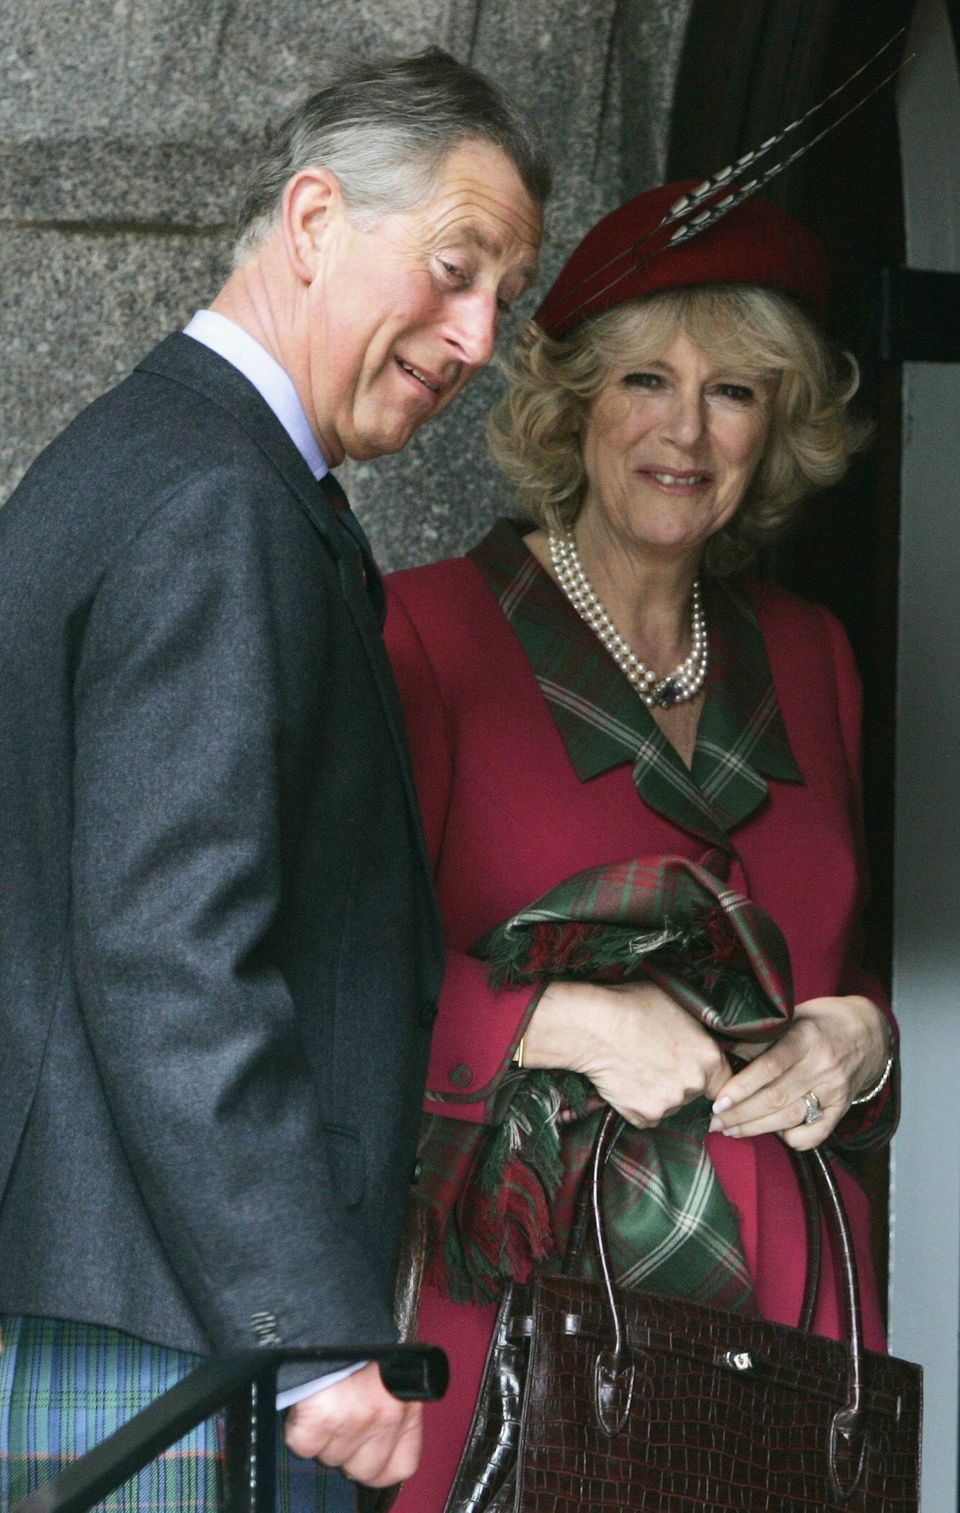 Prince Charles and the Duchess of Cornwall during their 2005 honeymoon in